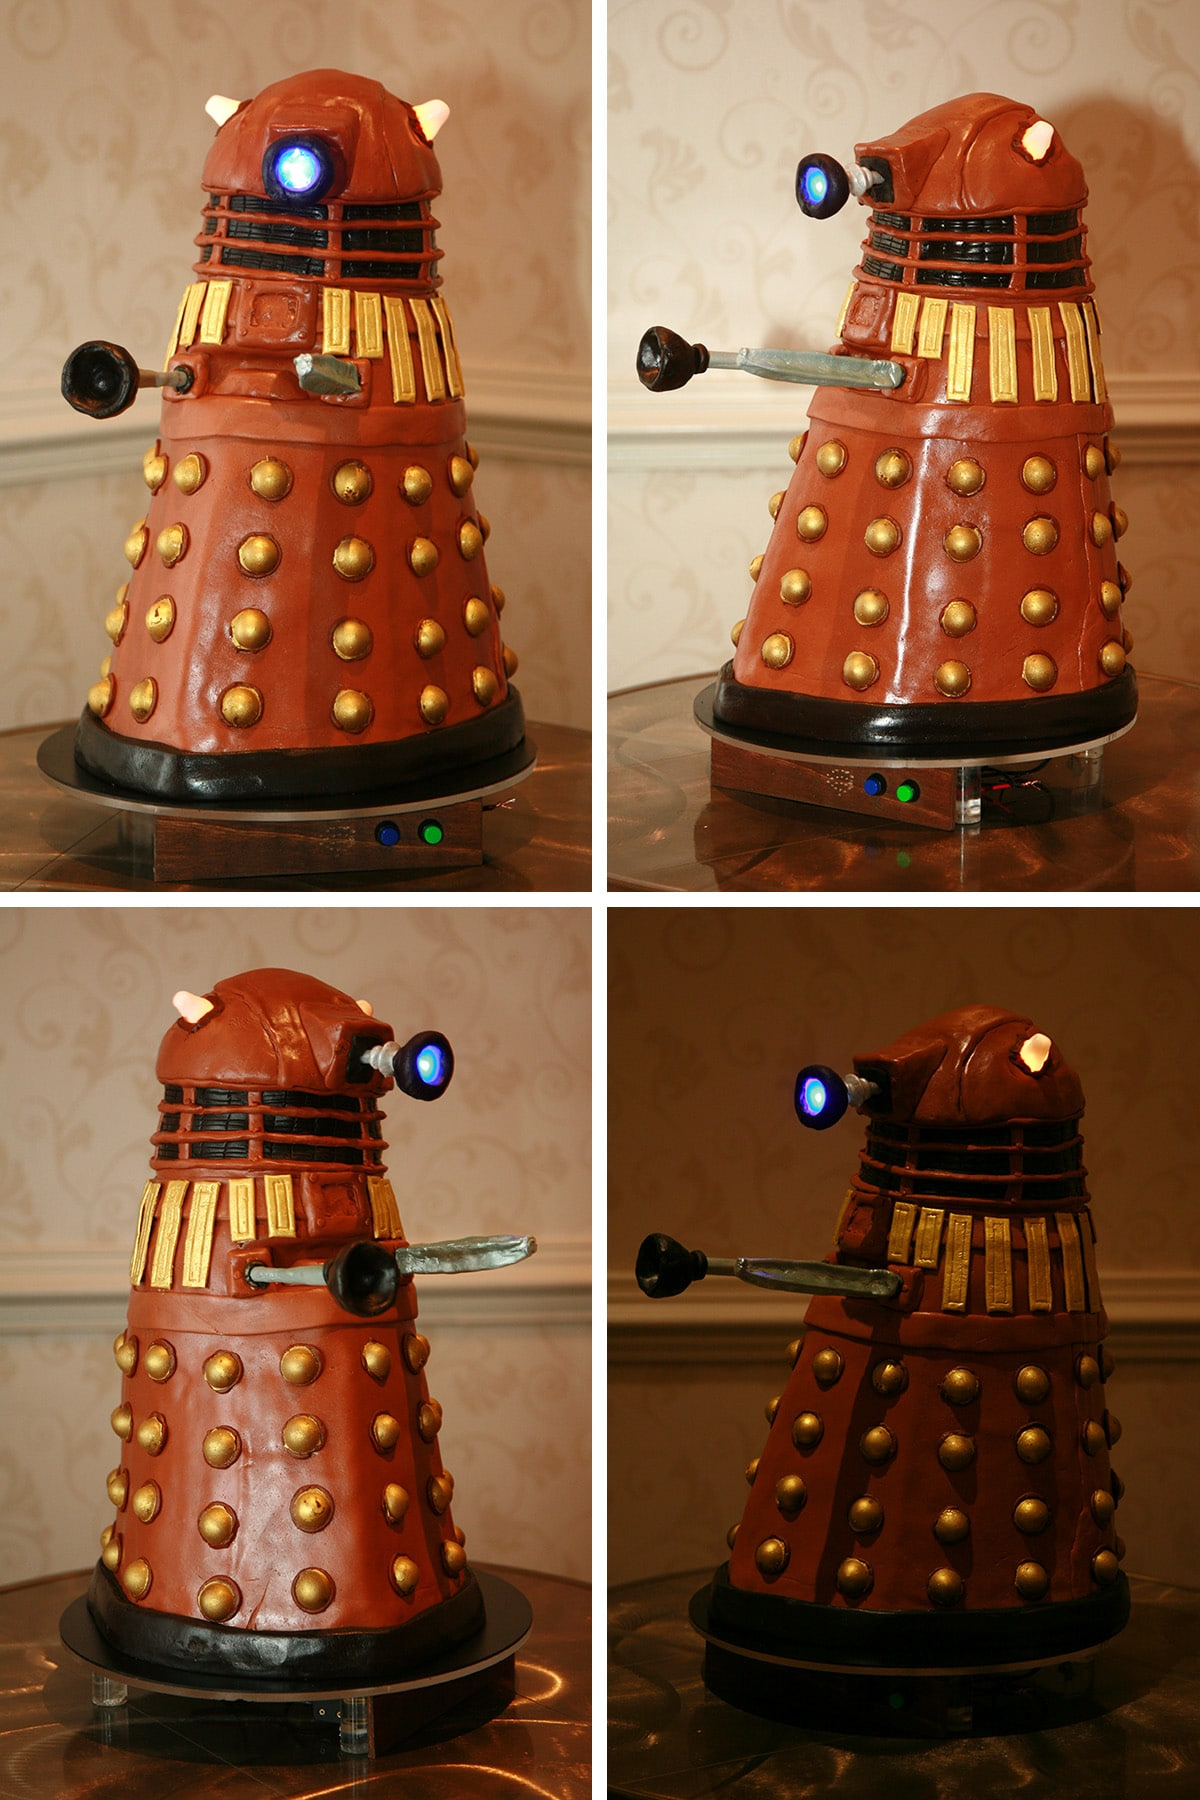 A 4 part image showing different views of the dalek cake.